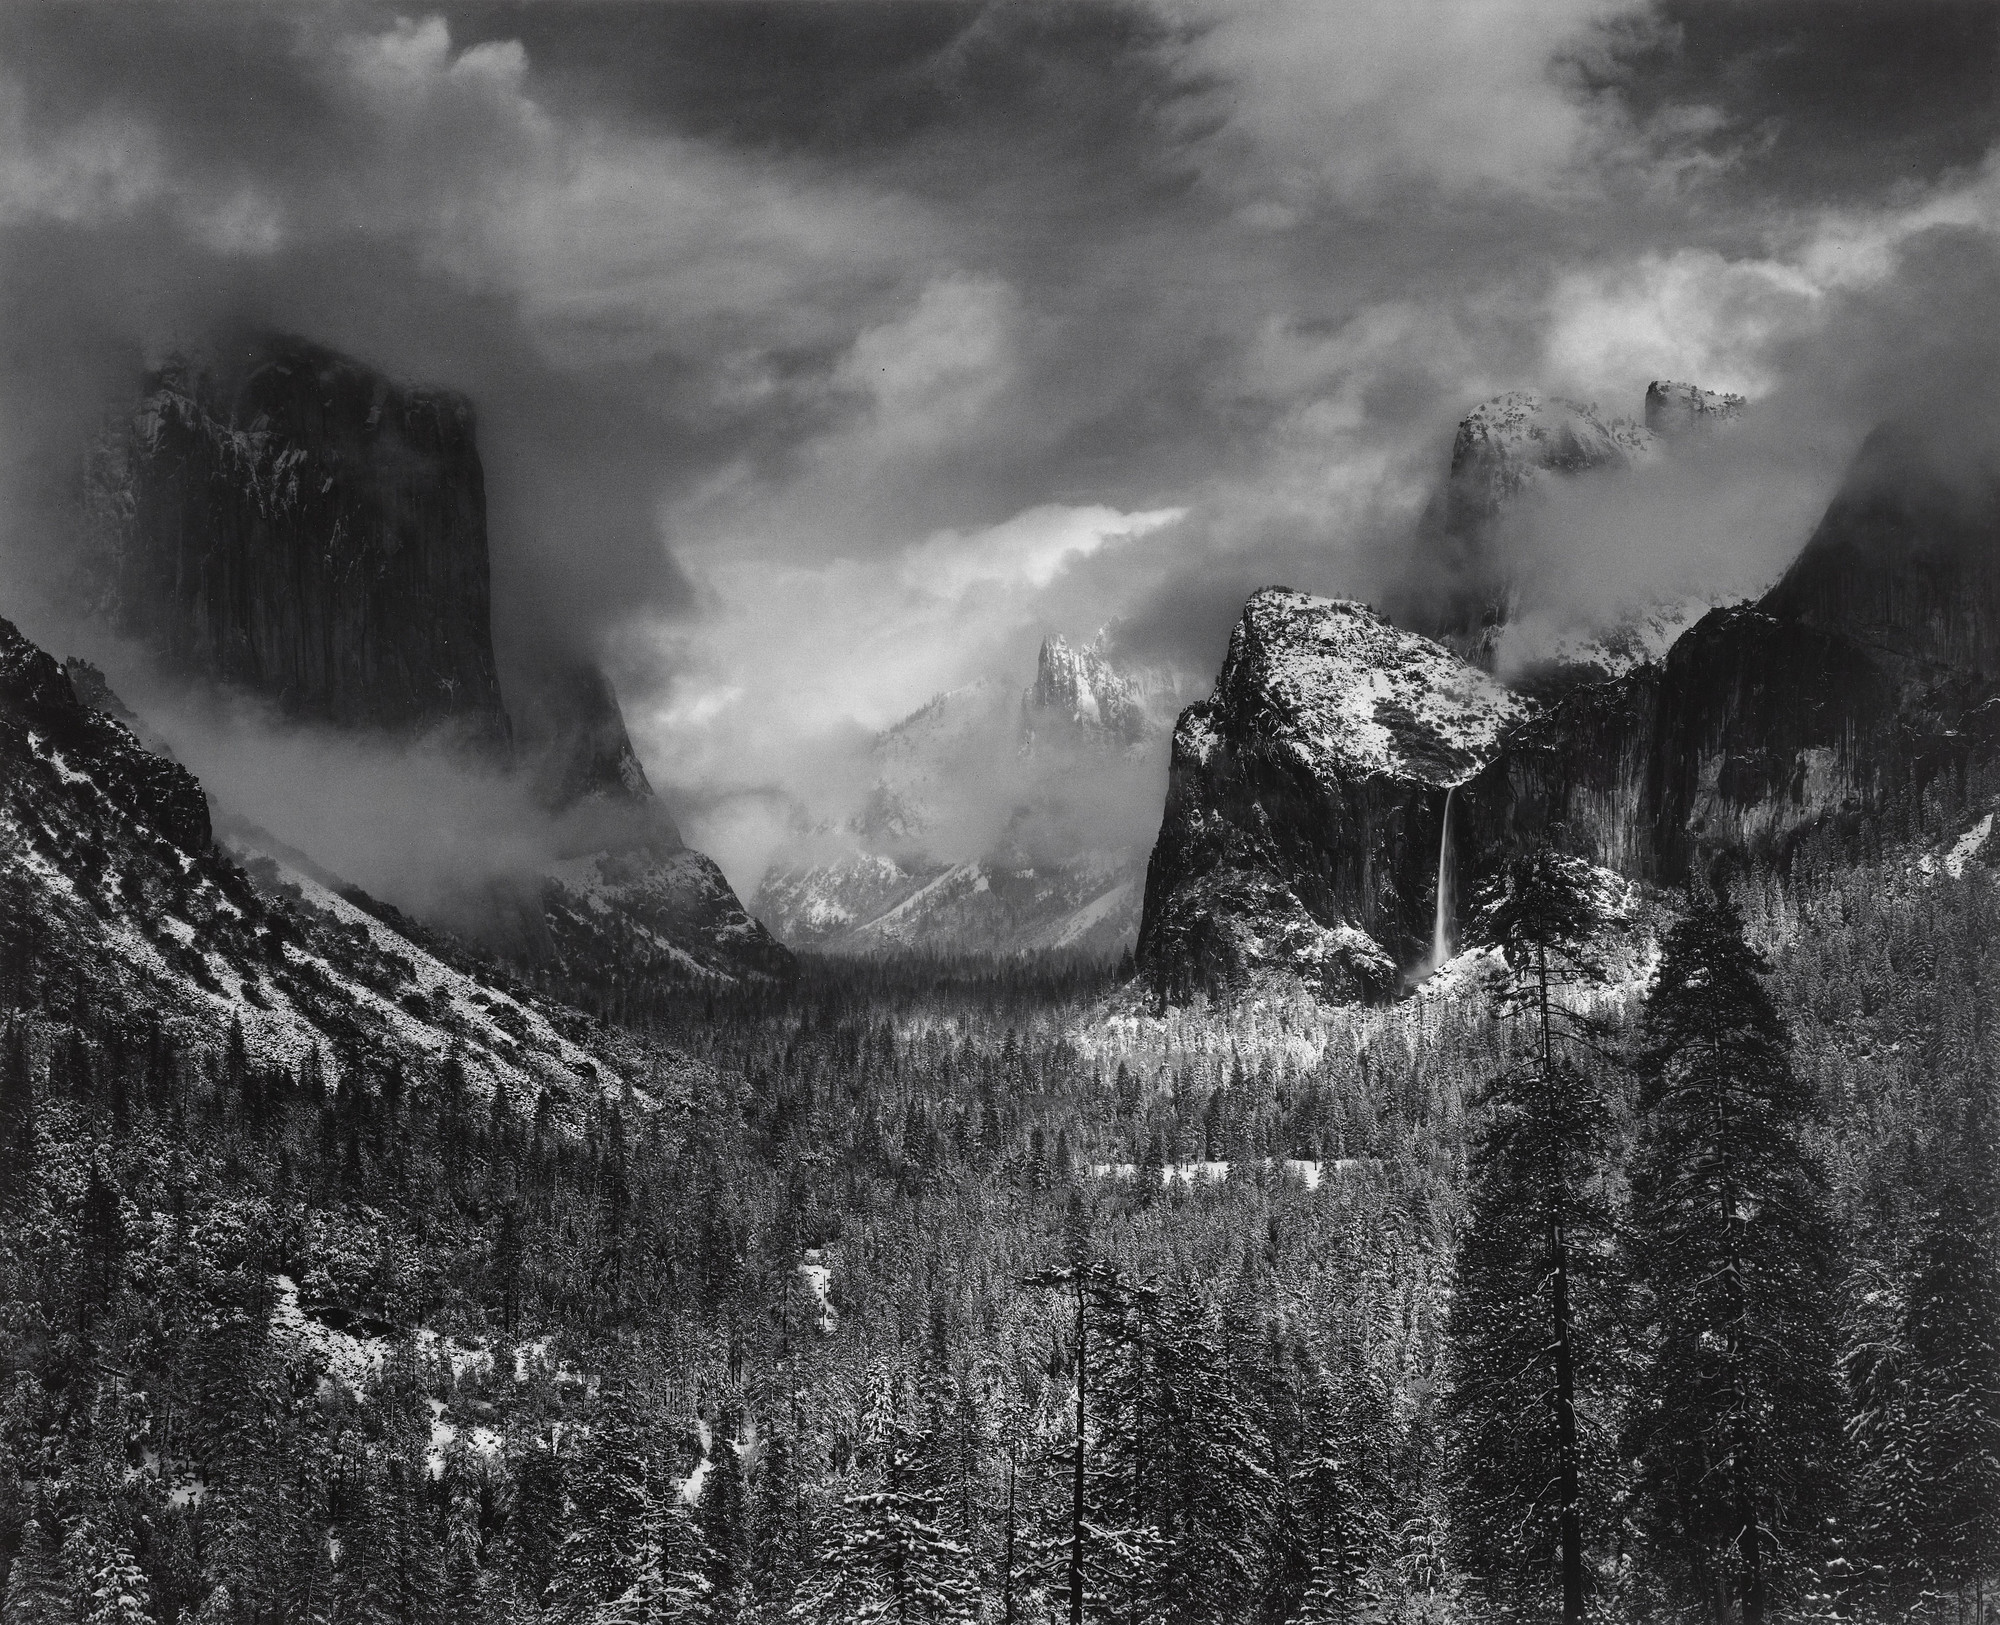 Ansel Adams. Clearing Winter Storm, Yosemite National Park, California. 1944